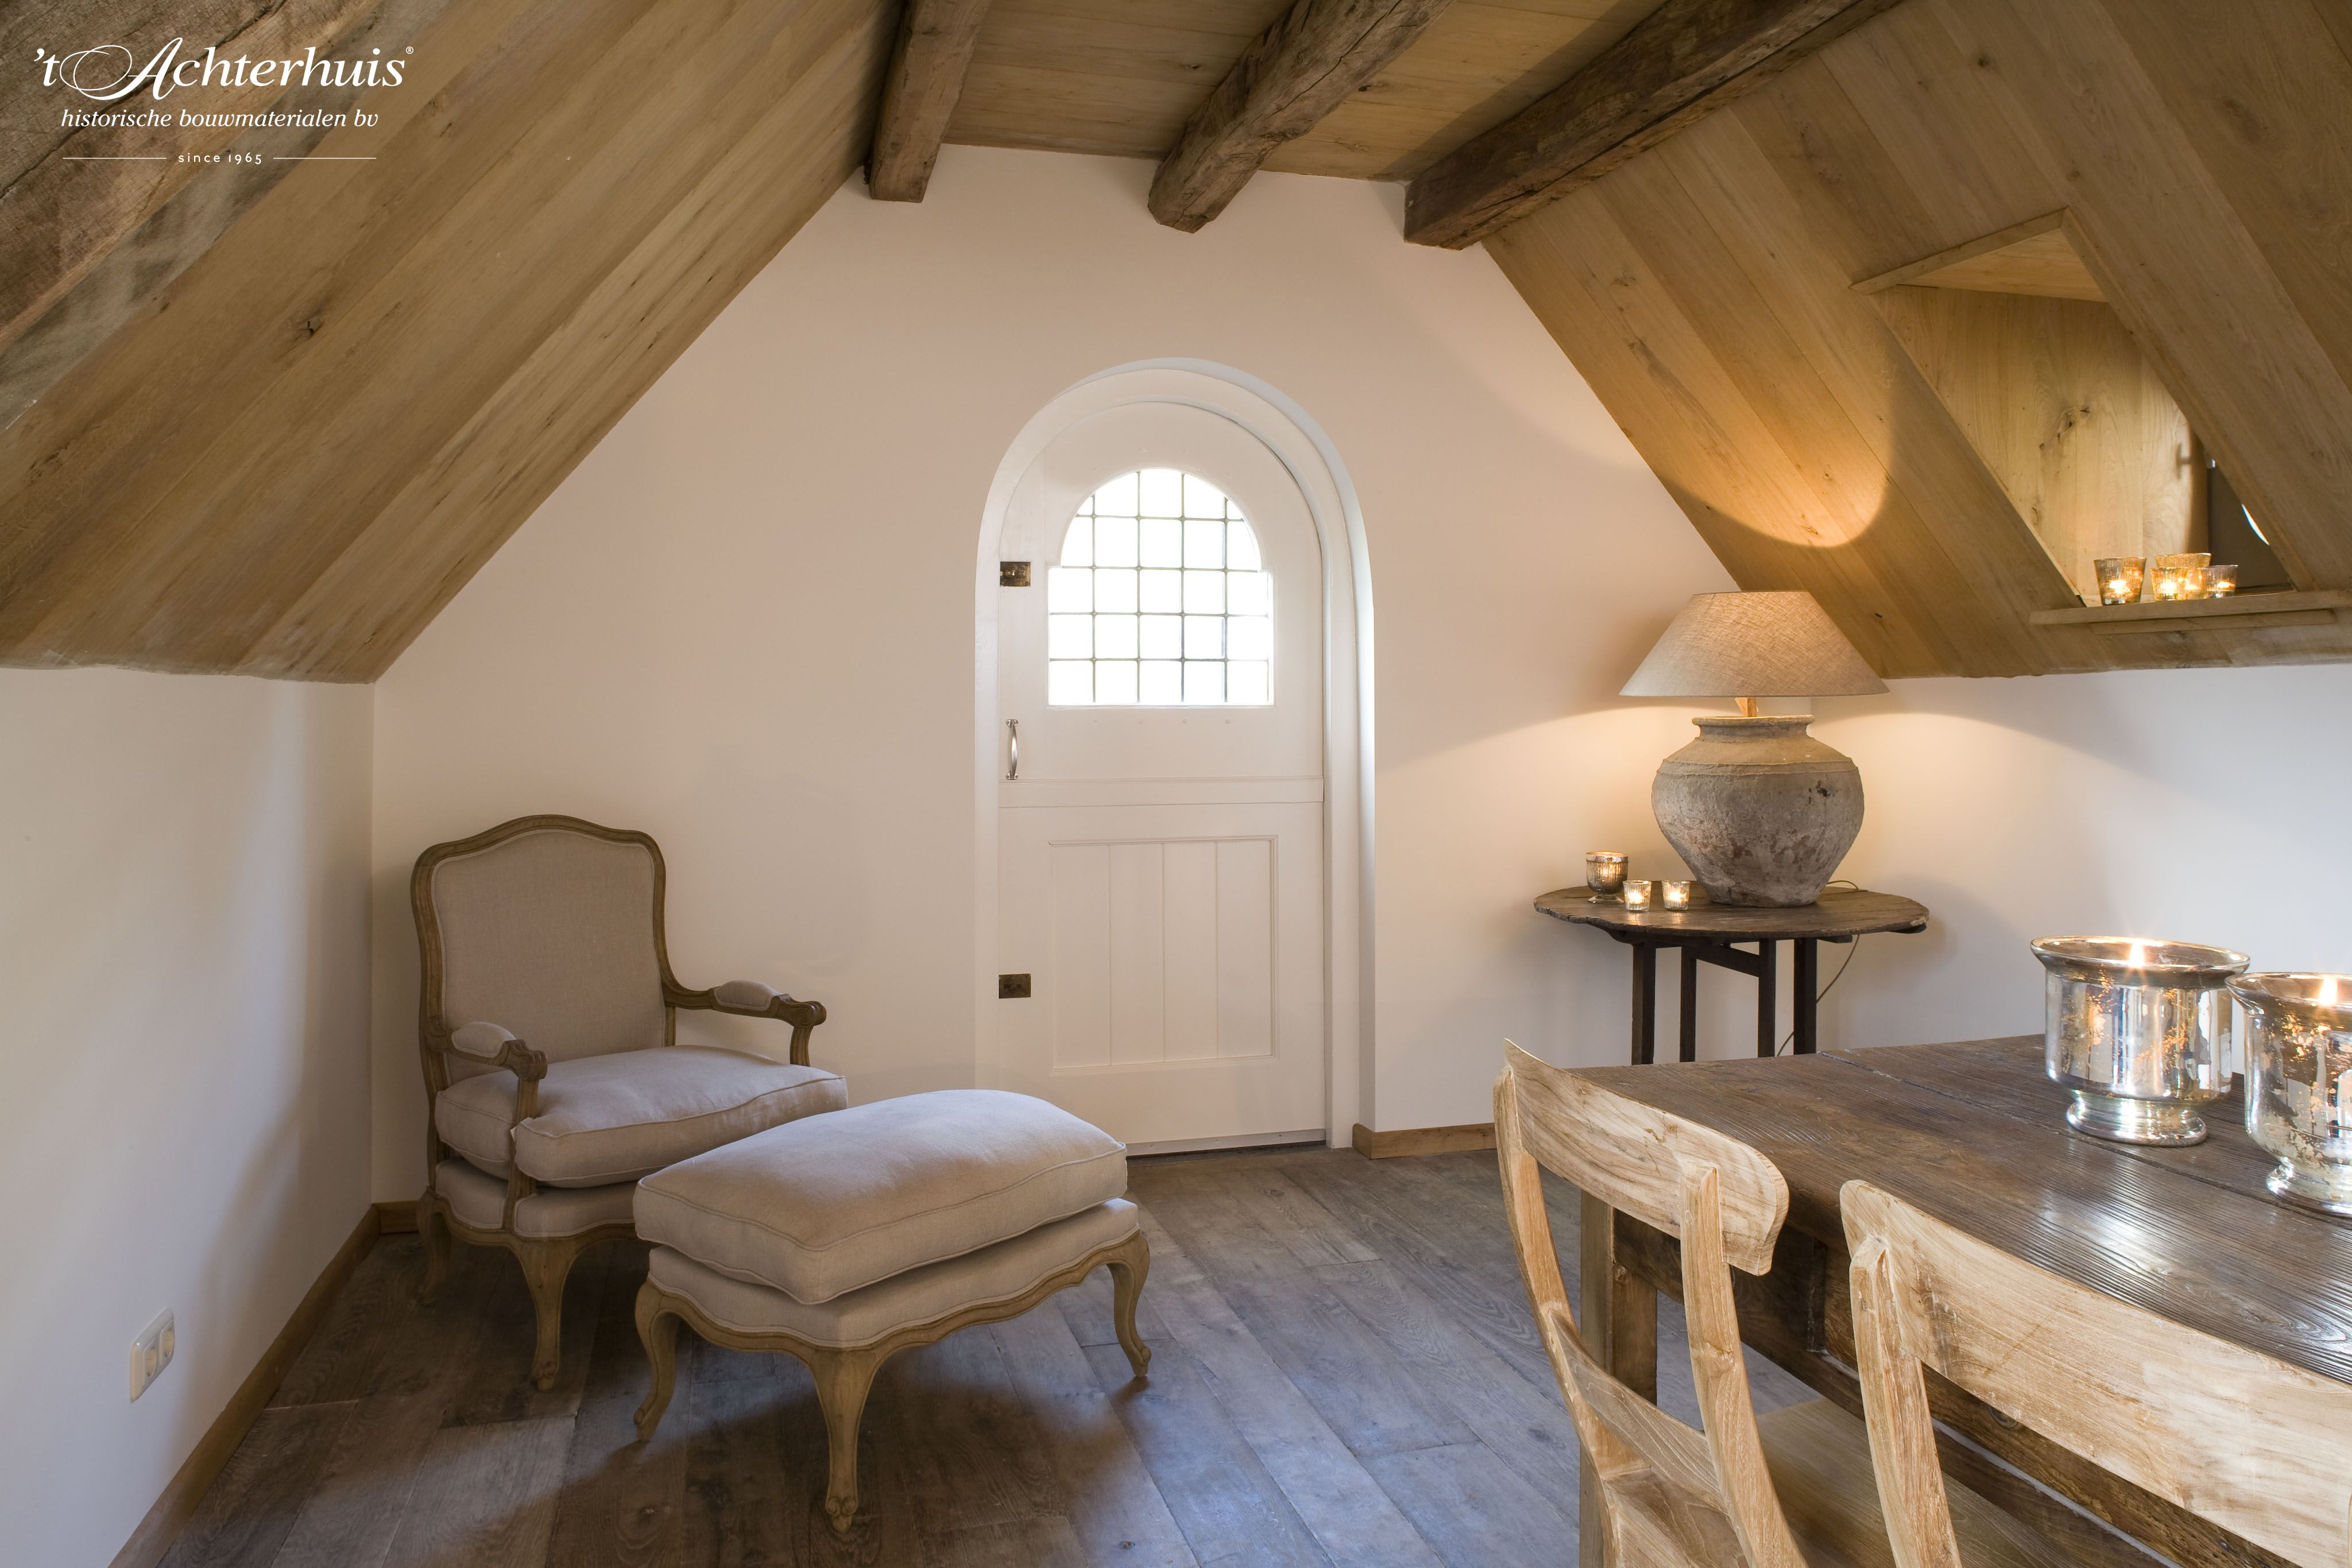 Old wooden floors available at t achterhuis. oude bouwmaterialen